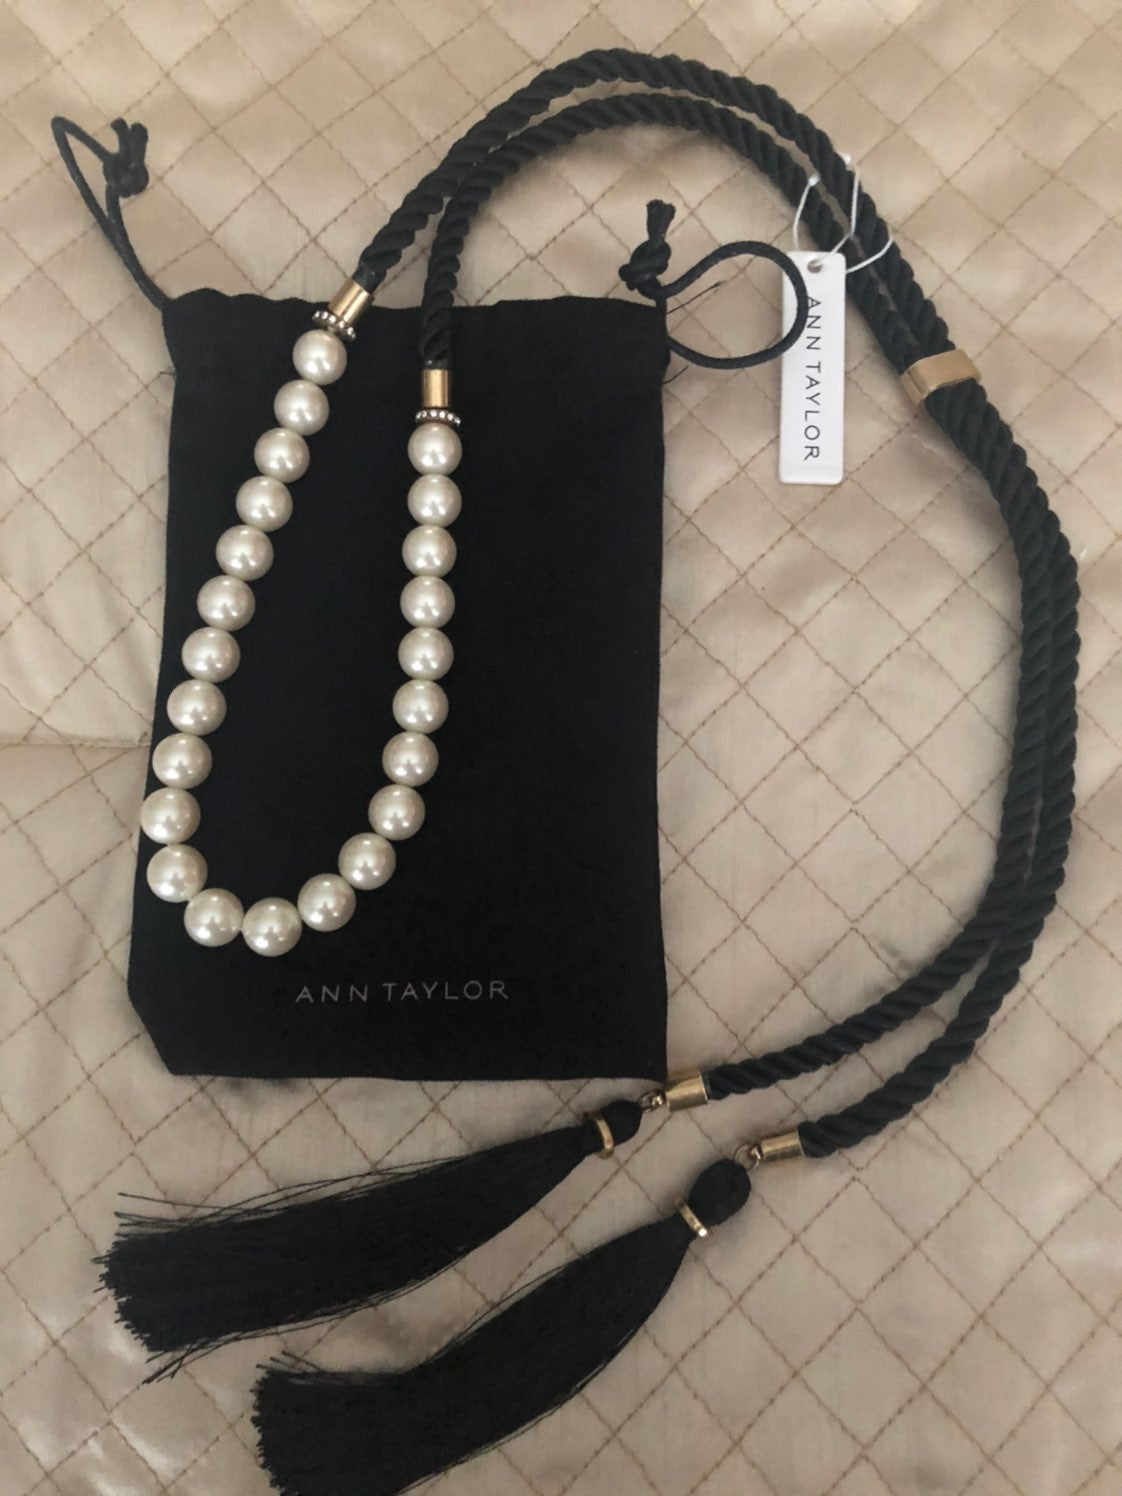 Ann Taylor Necklace of Pearls and Tassel